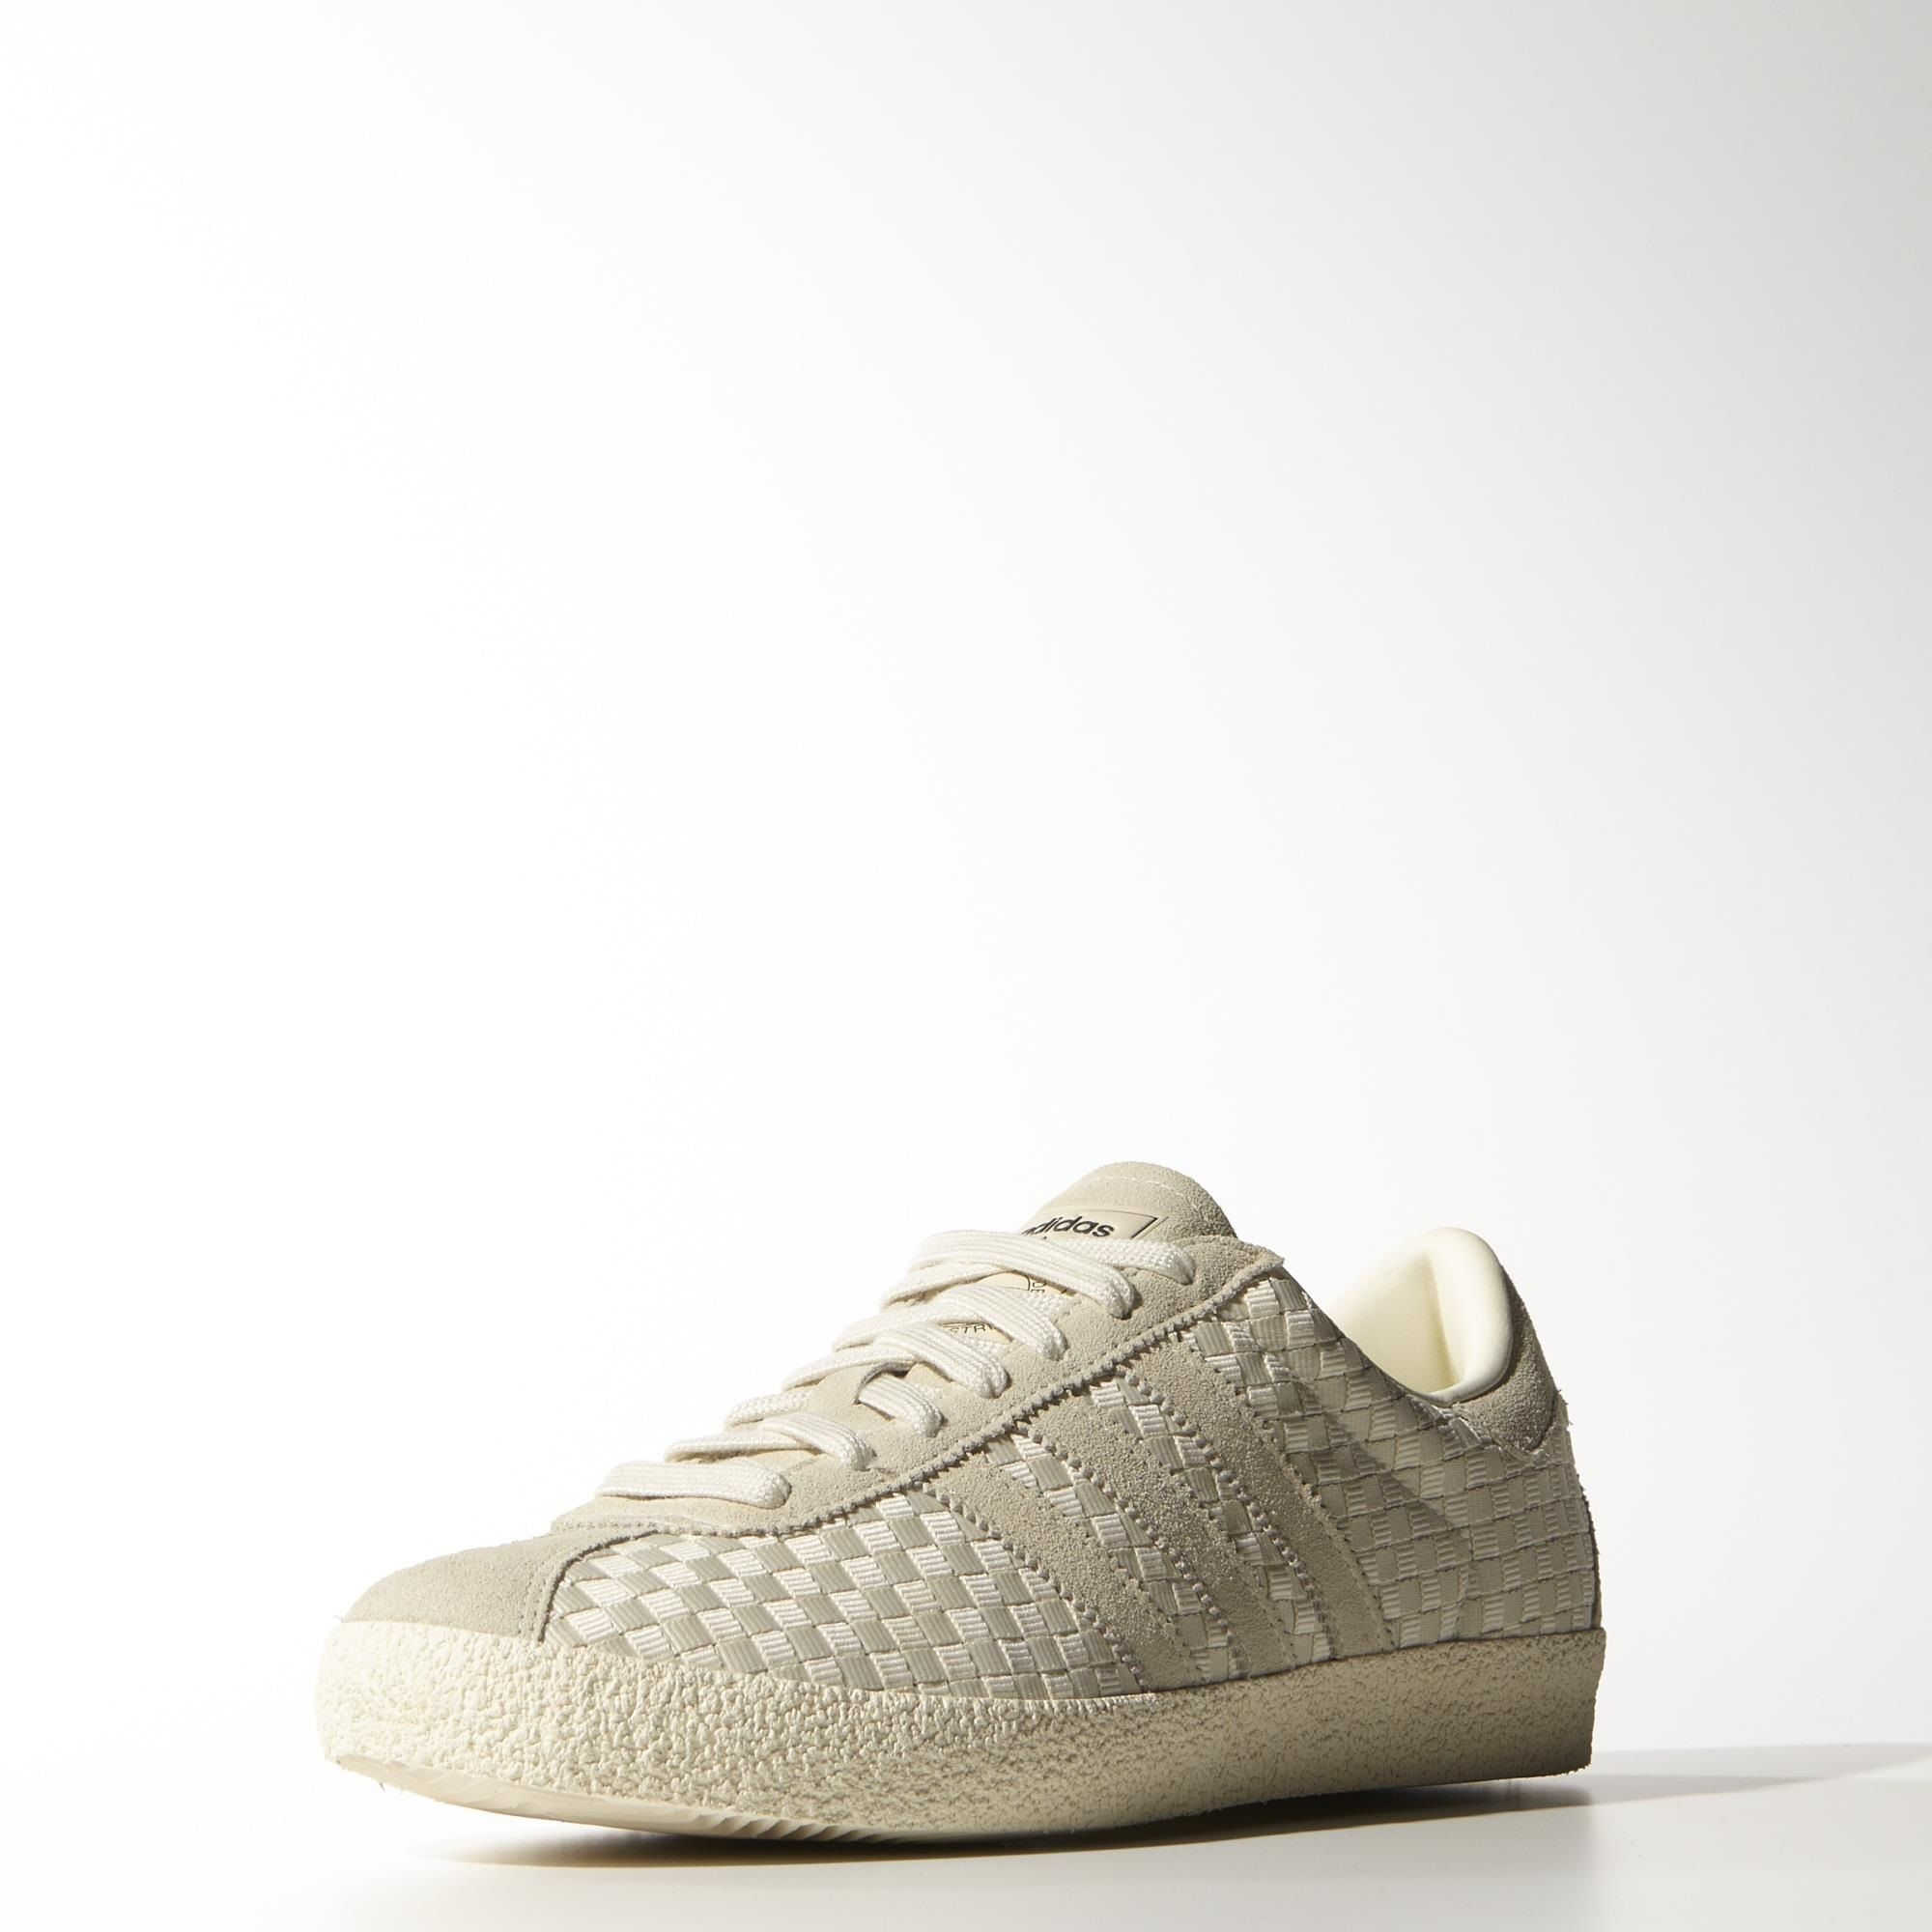 adidas - Gazelle 70s Shoes Cream White / Cream White / Core Black M19619 |  Tags